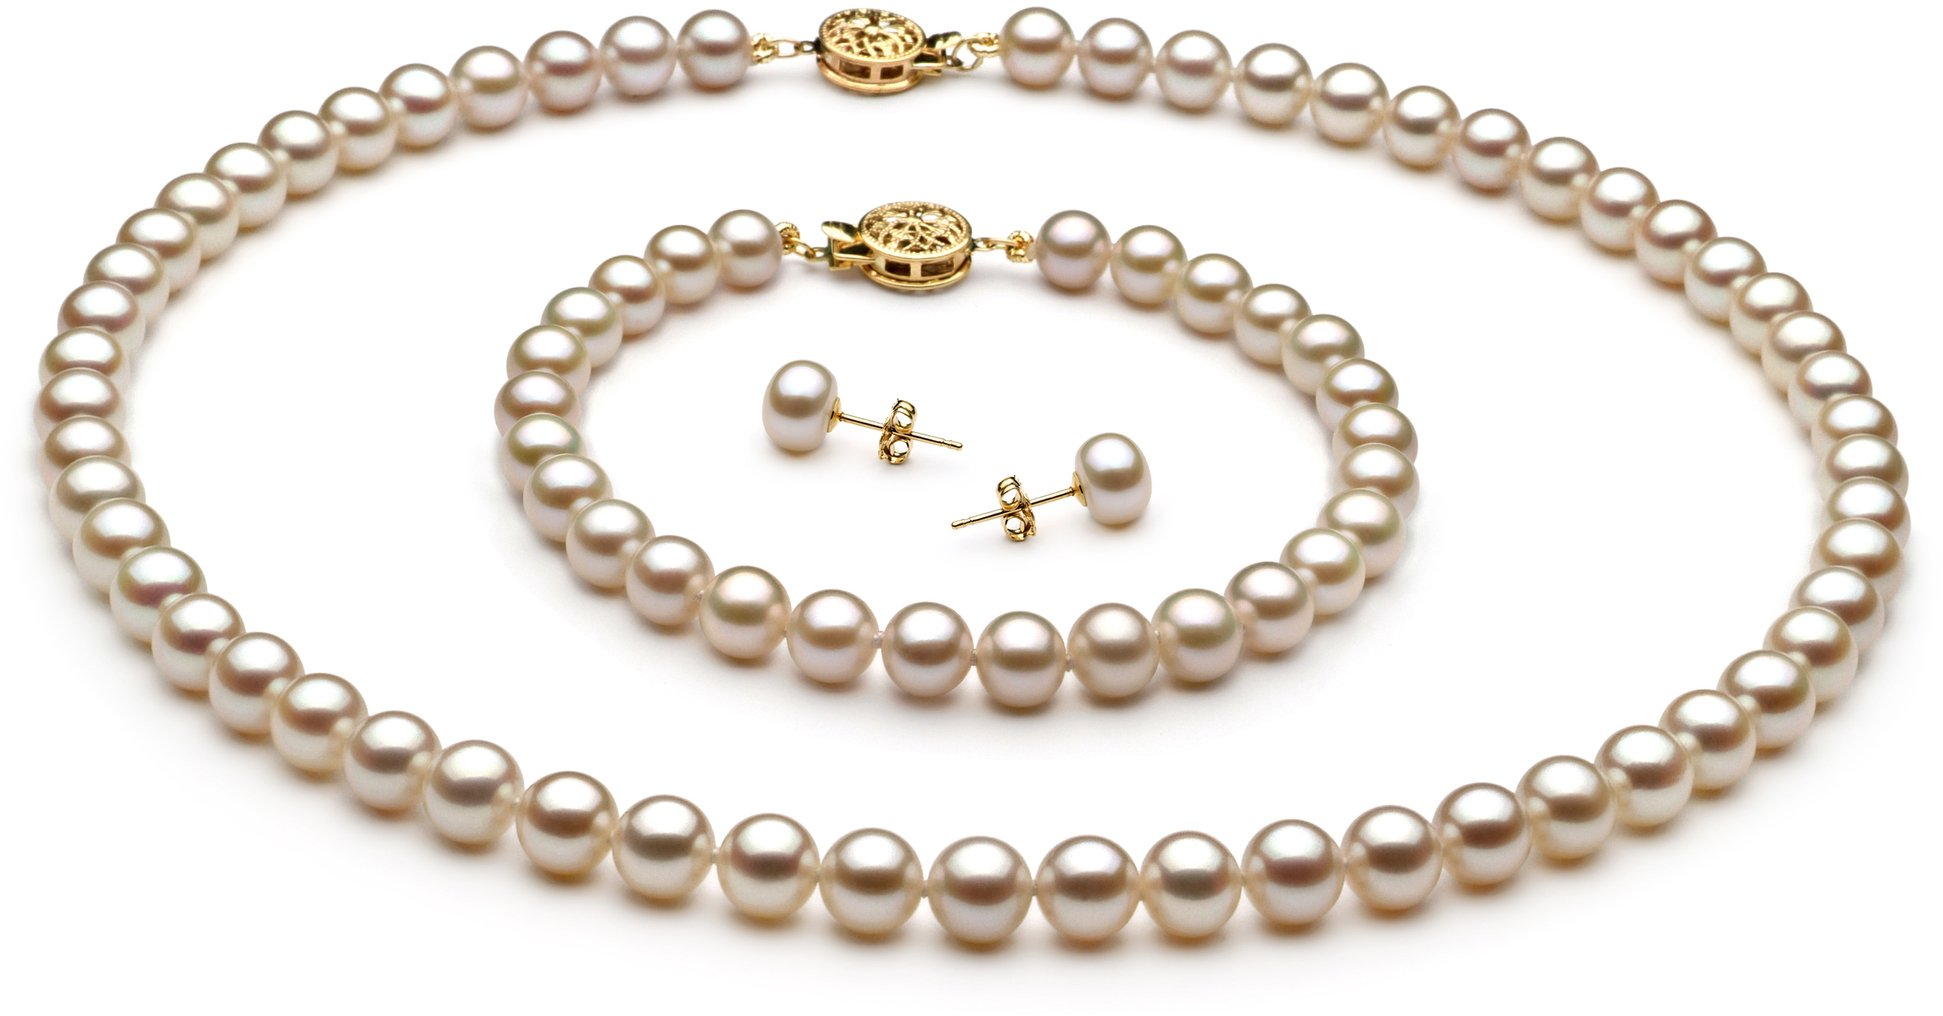 PearlsOnly - White 6-7mm AAA Quality Freshwater Cultured Pearl Set-16 in Chocker length